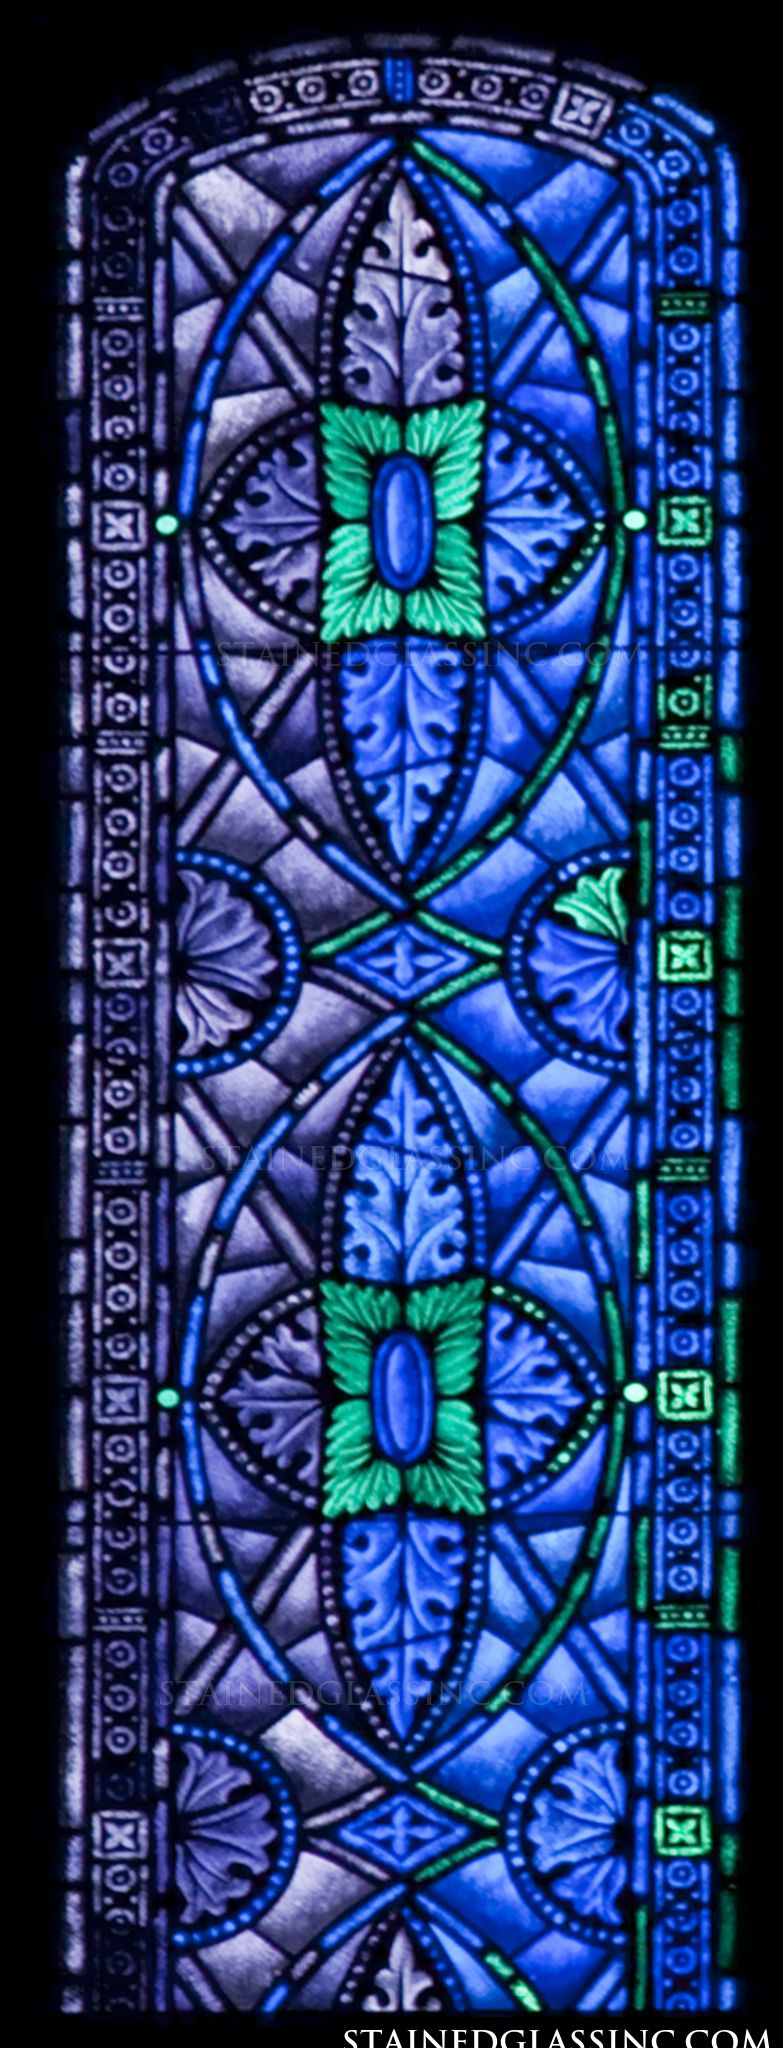 """Jaculum"" Stained Glass Window"